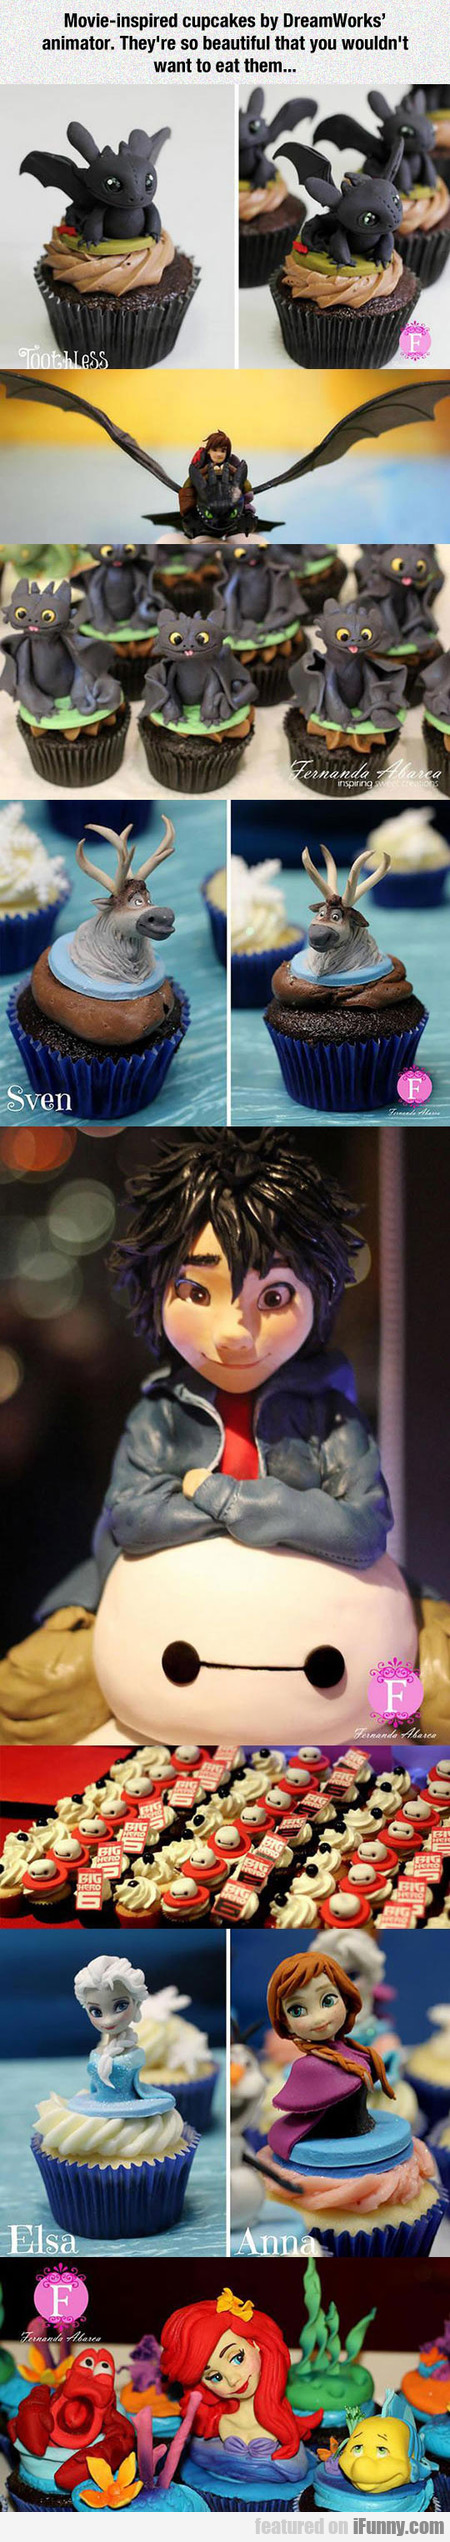 Movie-inspired Cupcakes